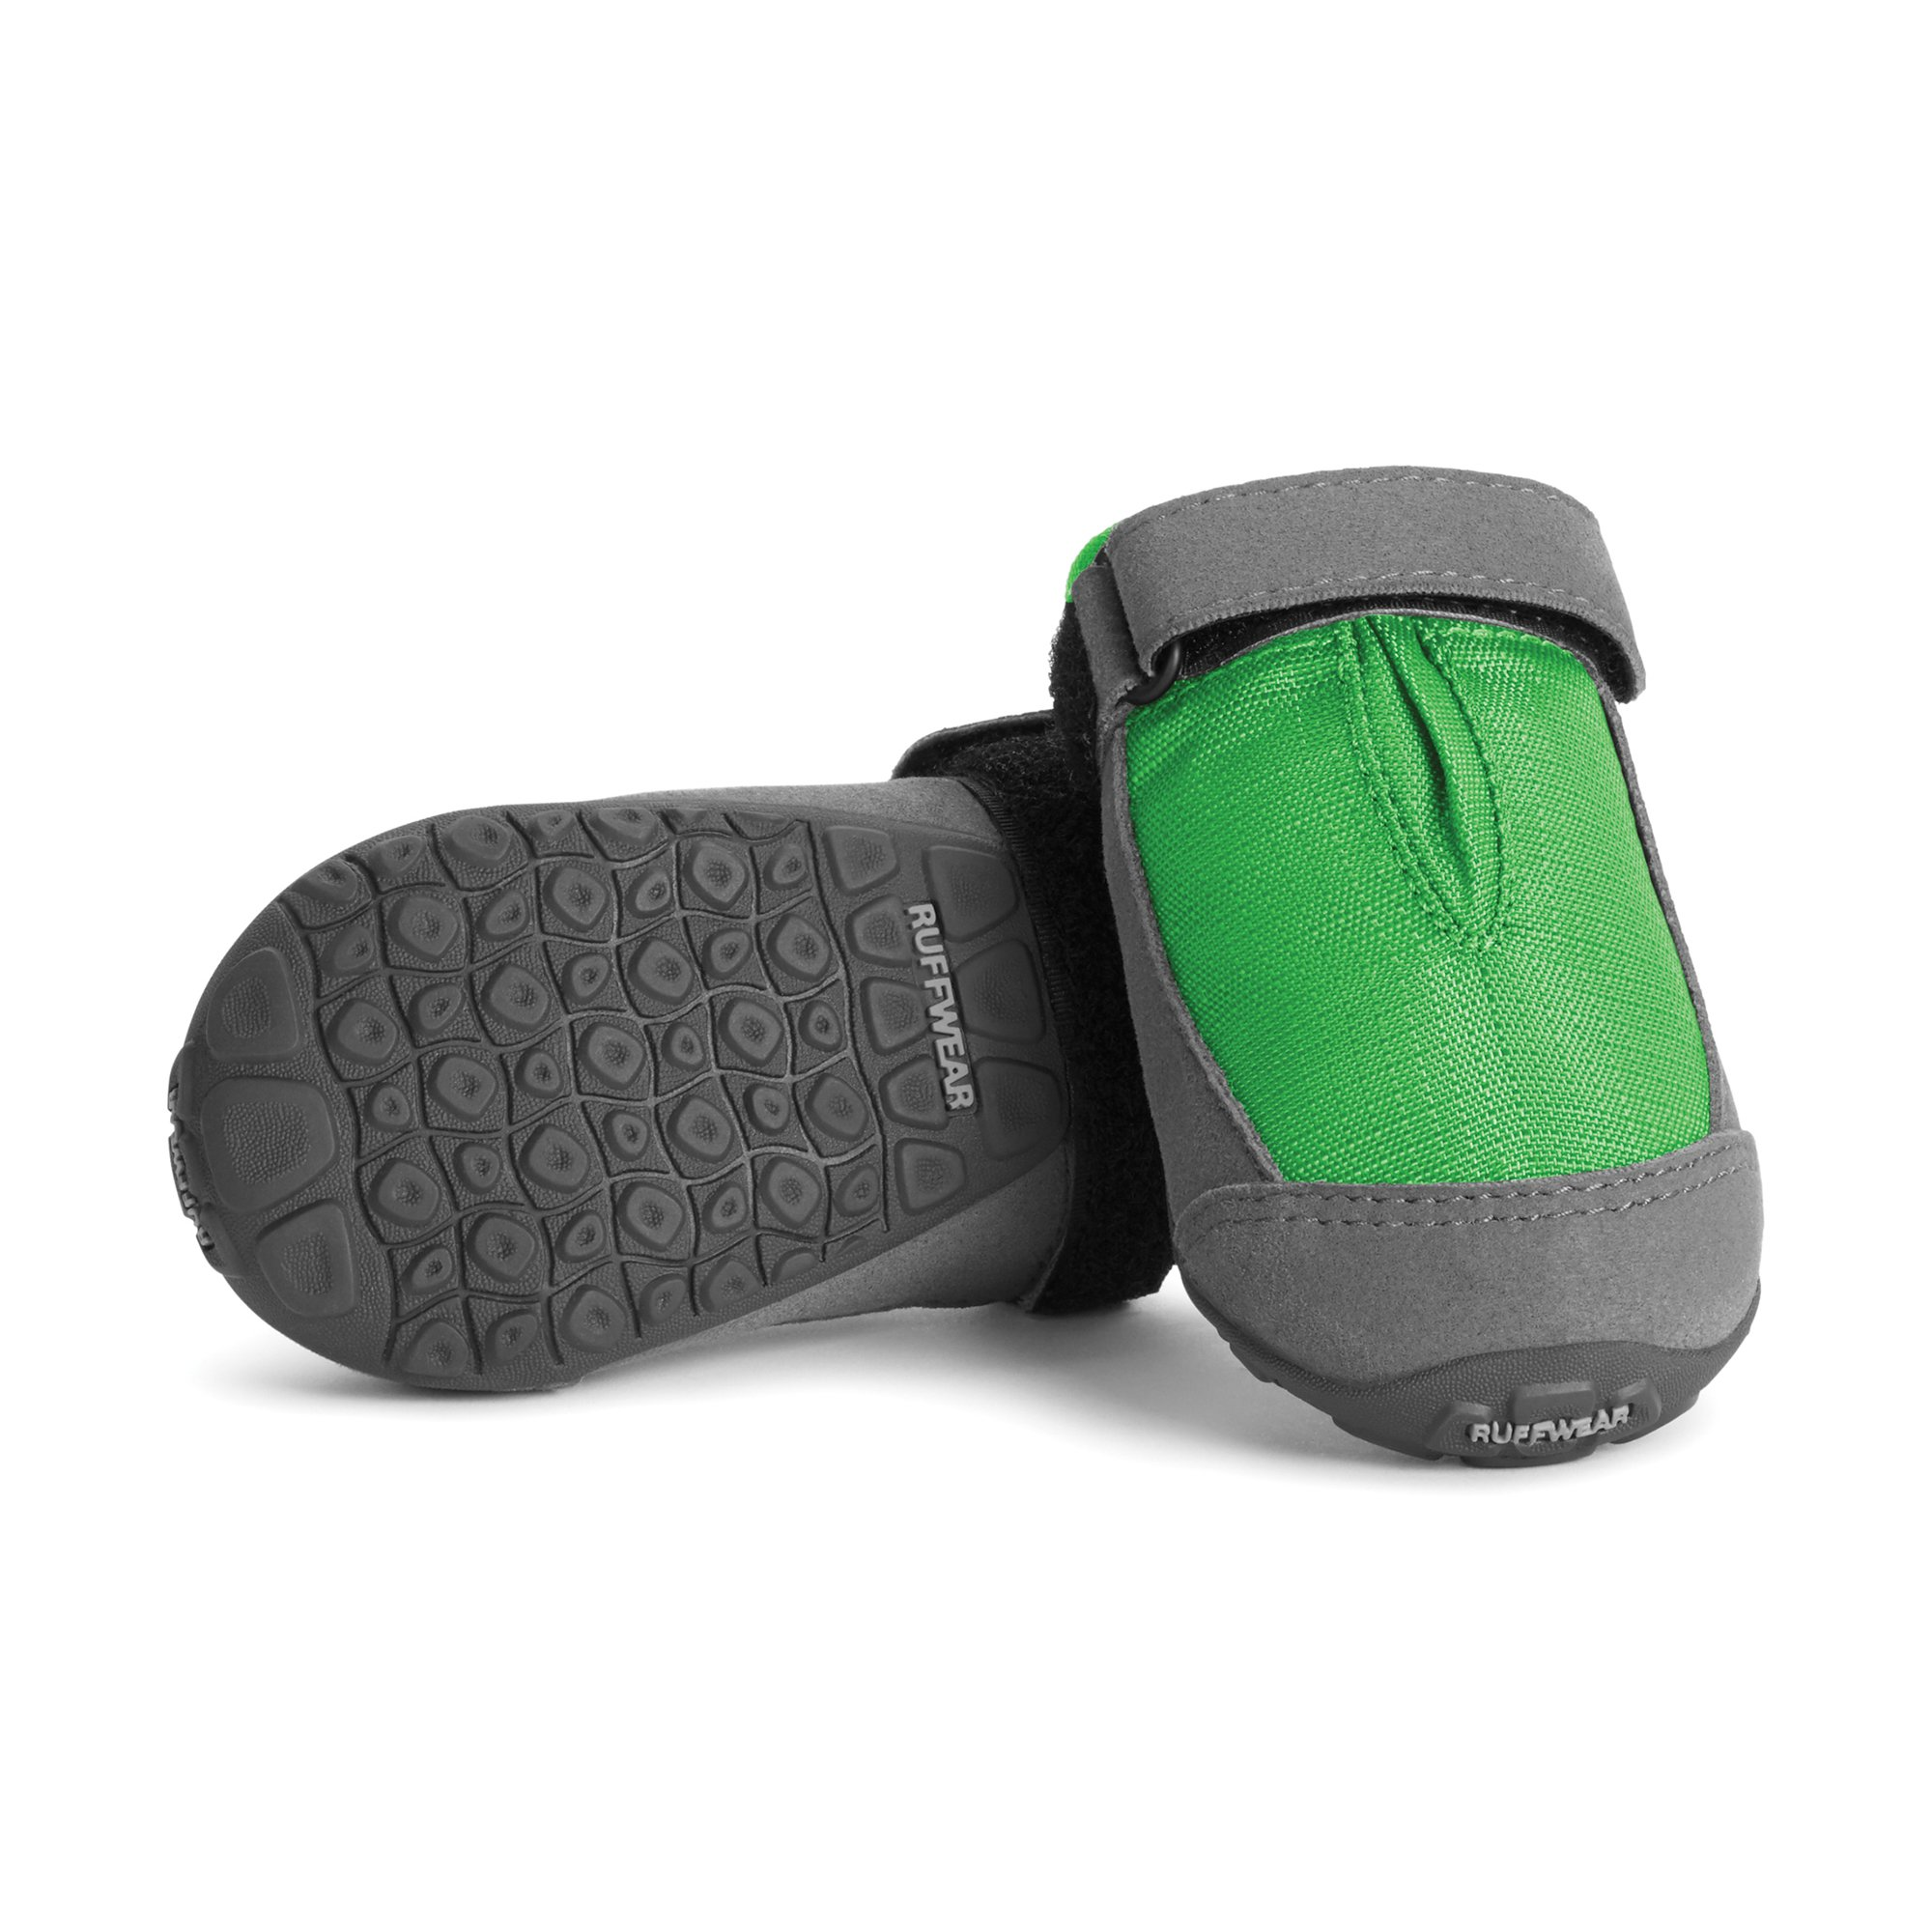 RUFFWEAR Dog Boots for Everyday Use (Set of 2), Weather Resistant, Medium Sized Breeds, Size: 64 mm/2.5 in, Meadow Green, Summit Trex, P15401-345250 by RUFFWEAR